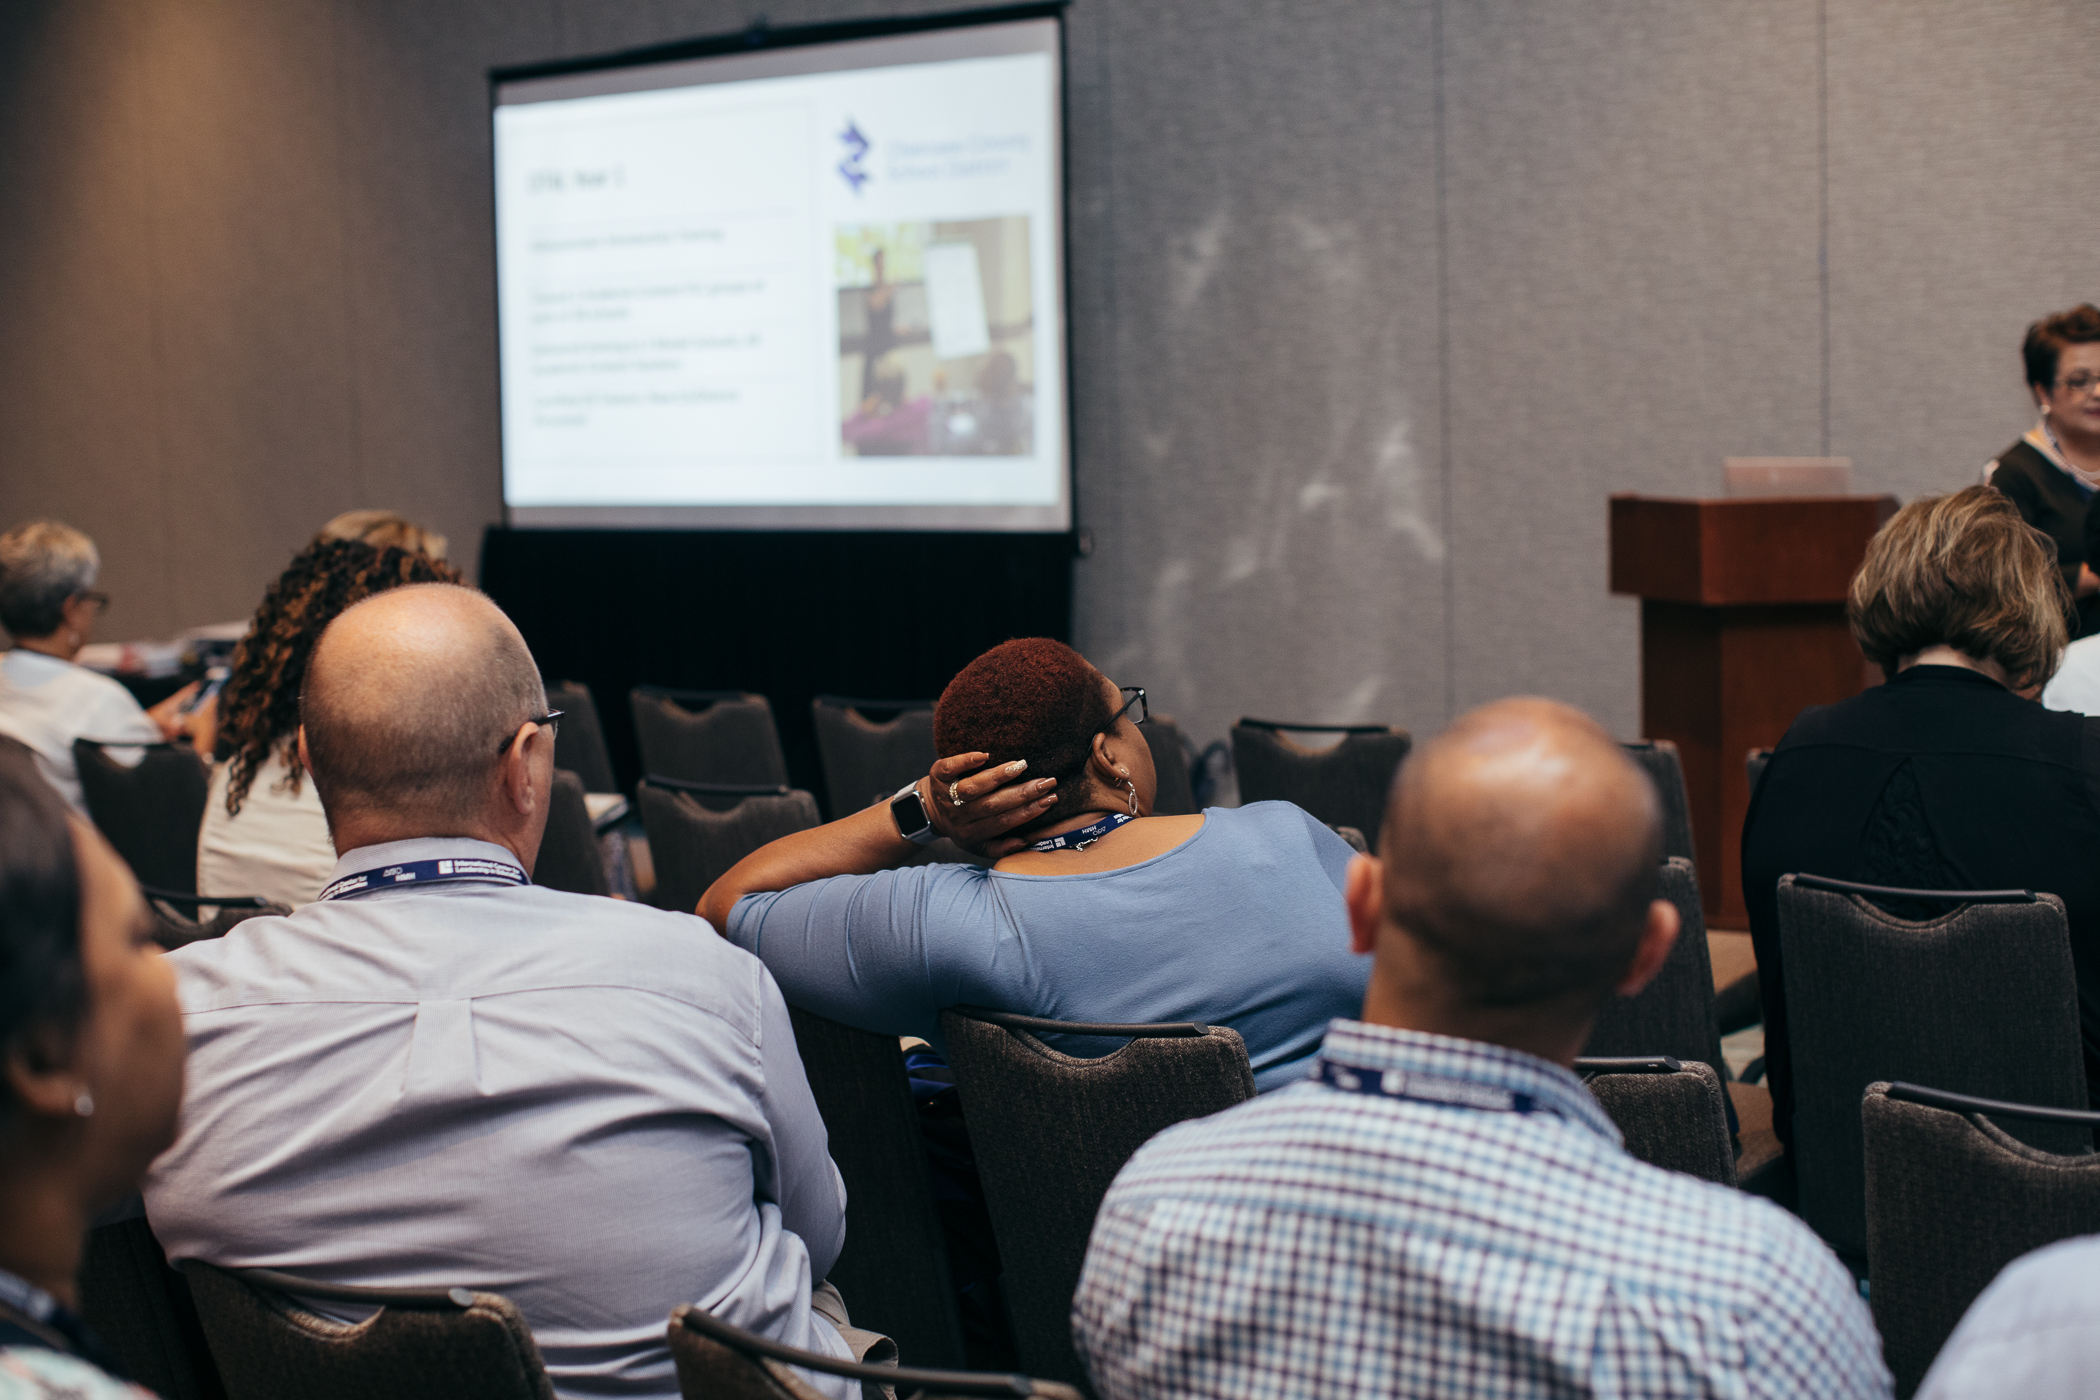 live event commercial photography brand storytelling for education florida conference photographer ©2018abigailbobophotography-65.jpg